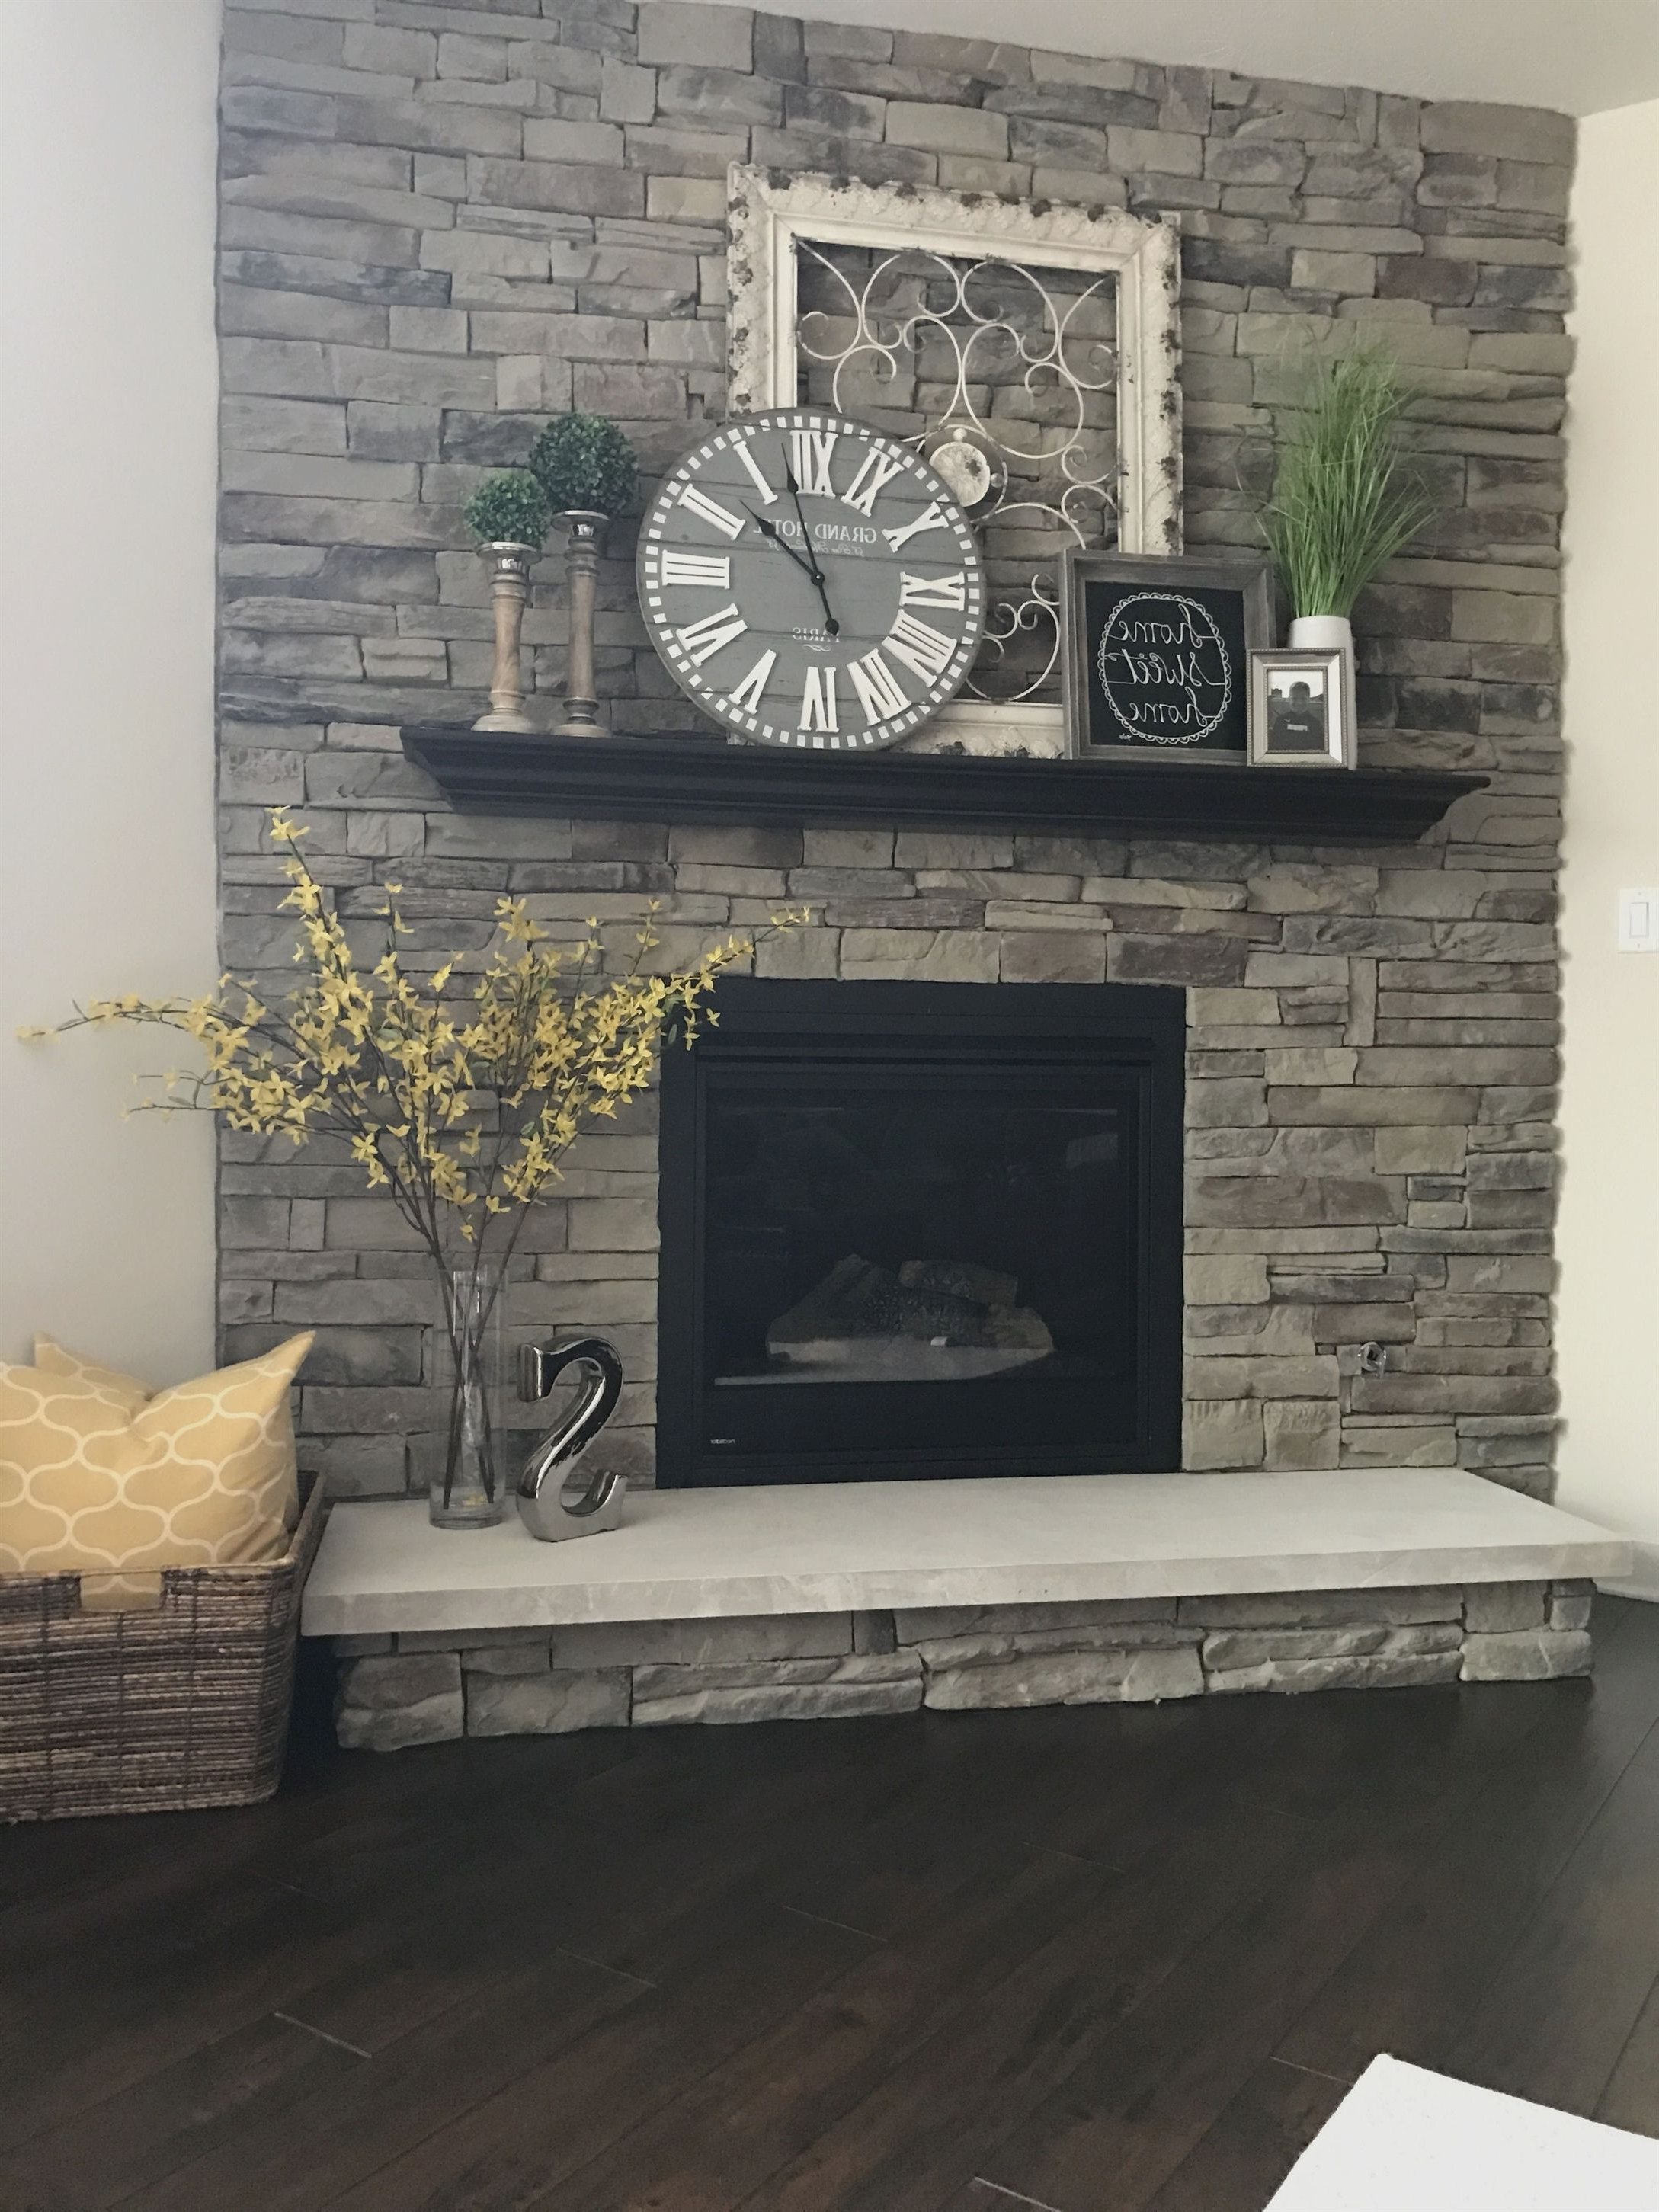 My Fireplace.tal Frame, Home Sign, & Clock (Hobby Lobby) (View 15 of 20)